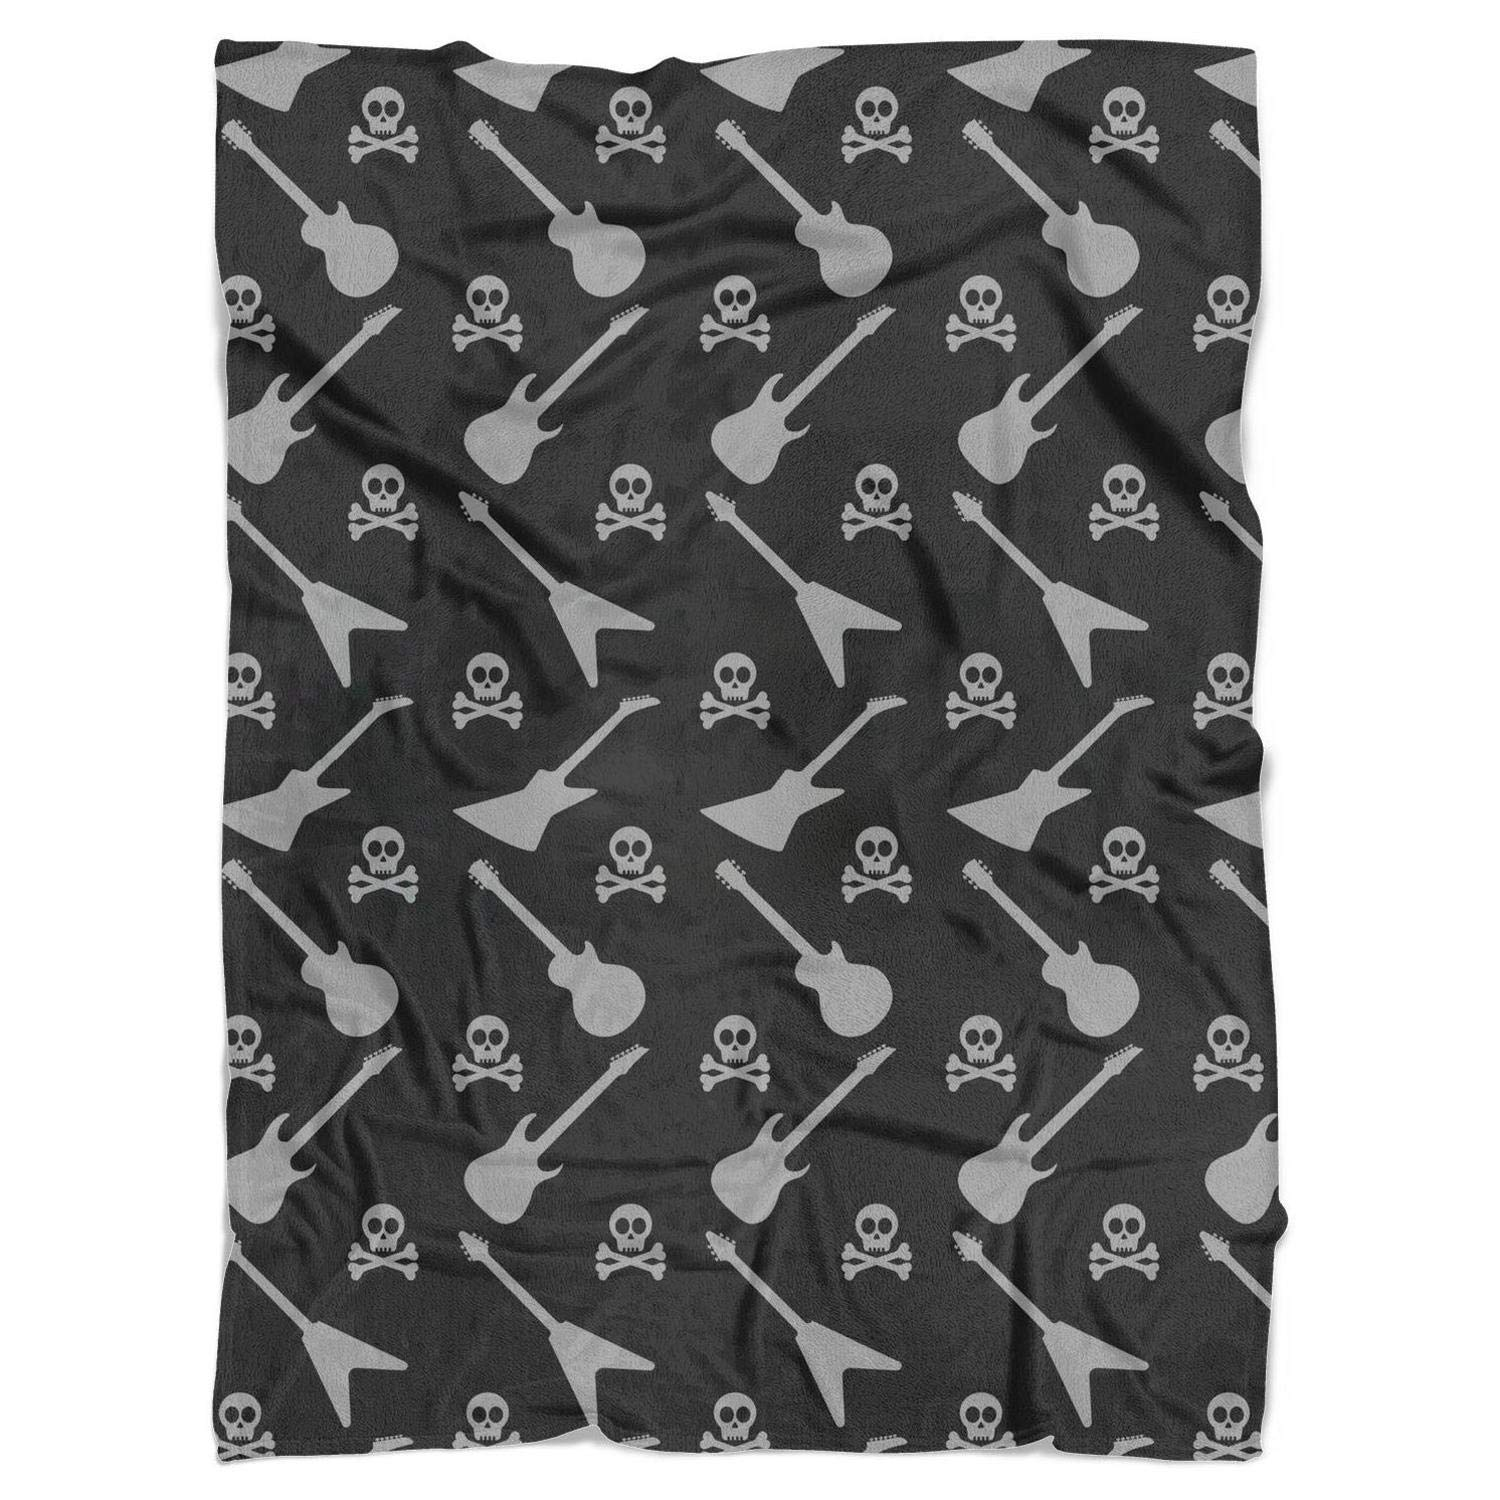 Pop Skull with Rock Guitar Bed Blanket Luxury Flannel Blanket for Couch or Bed 59''X79'' by FItTer